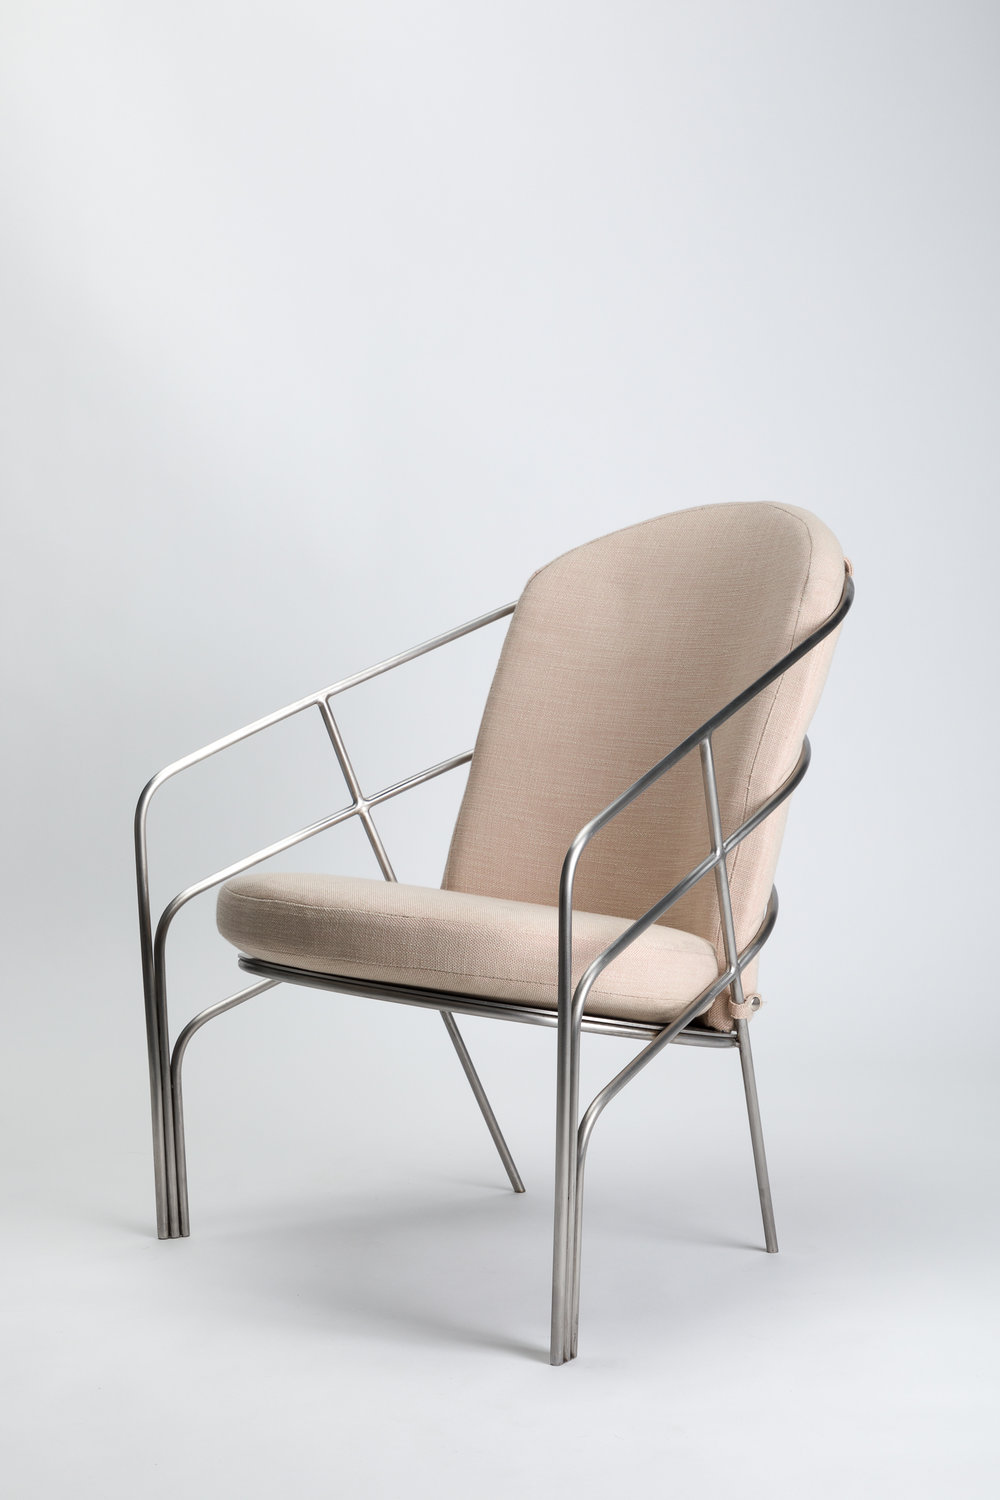 LAUN - DeMille Chair Stainless 004_photo credit Little League Studio.jpg